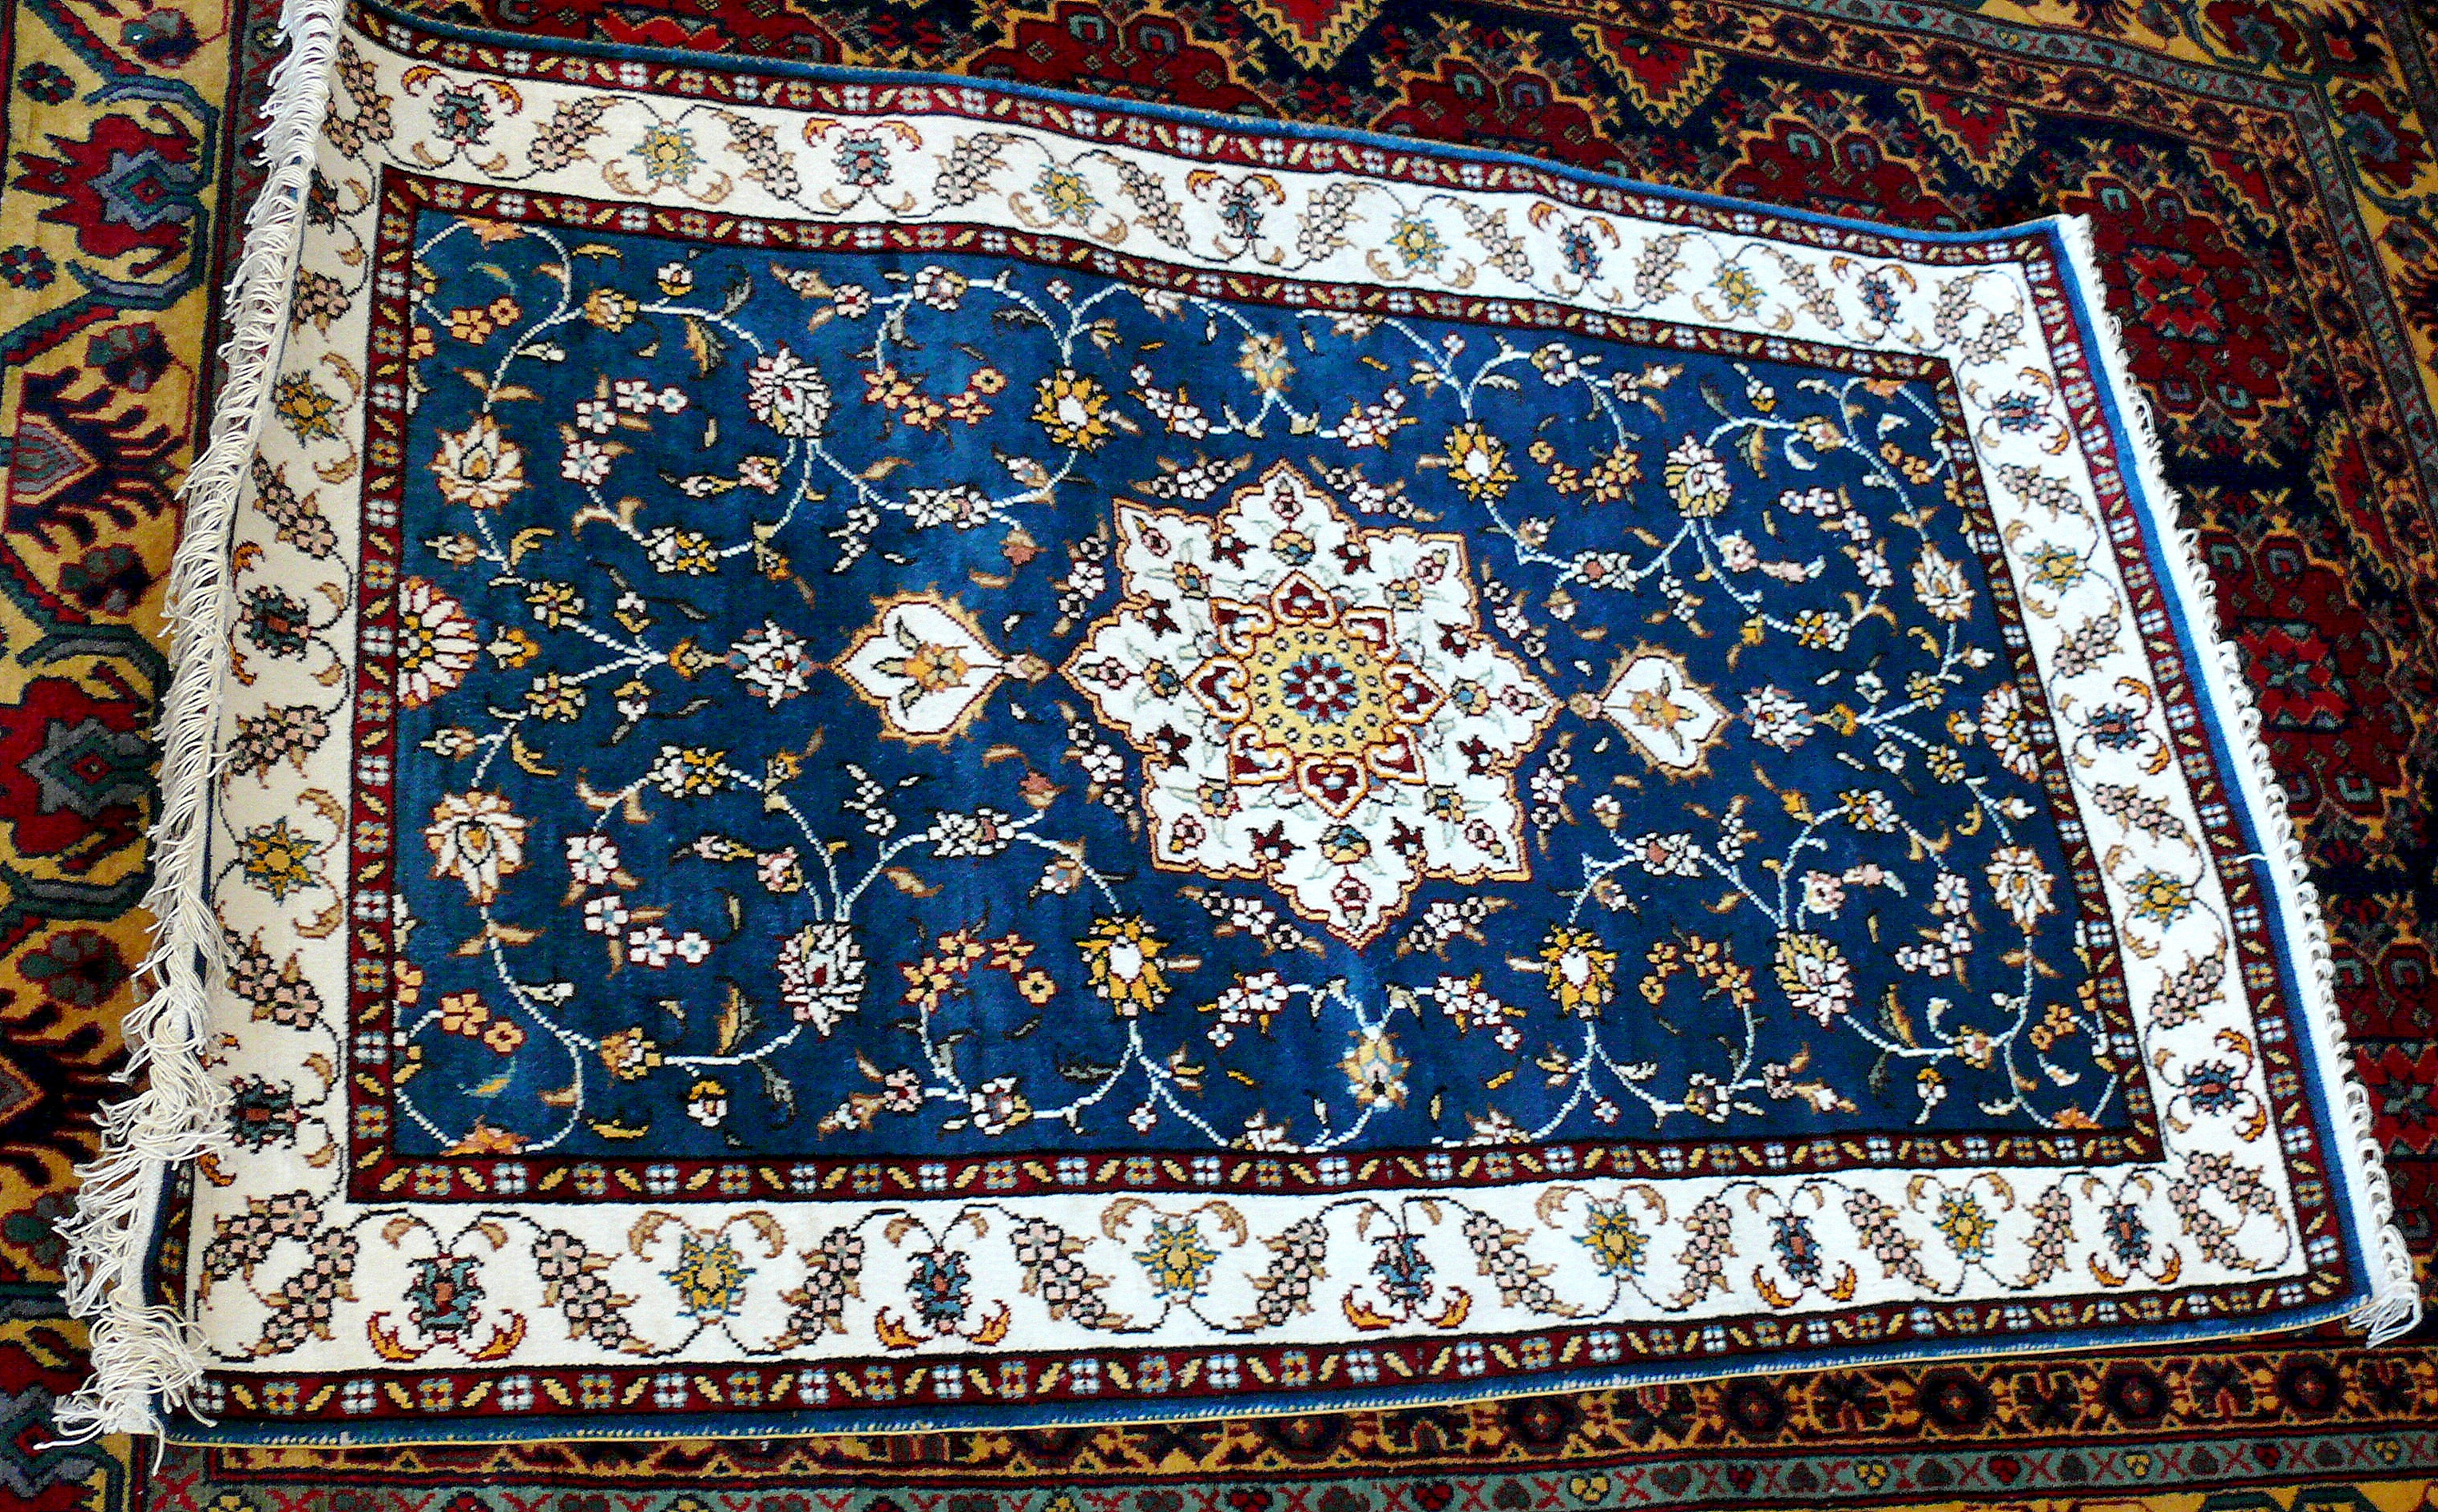 Azerbaijani Carpets 9 Things You Need To Know About Them Before With Persian Style Wool Rugs (View 5 of 15)